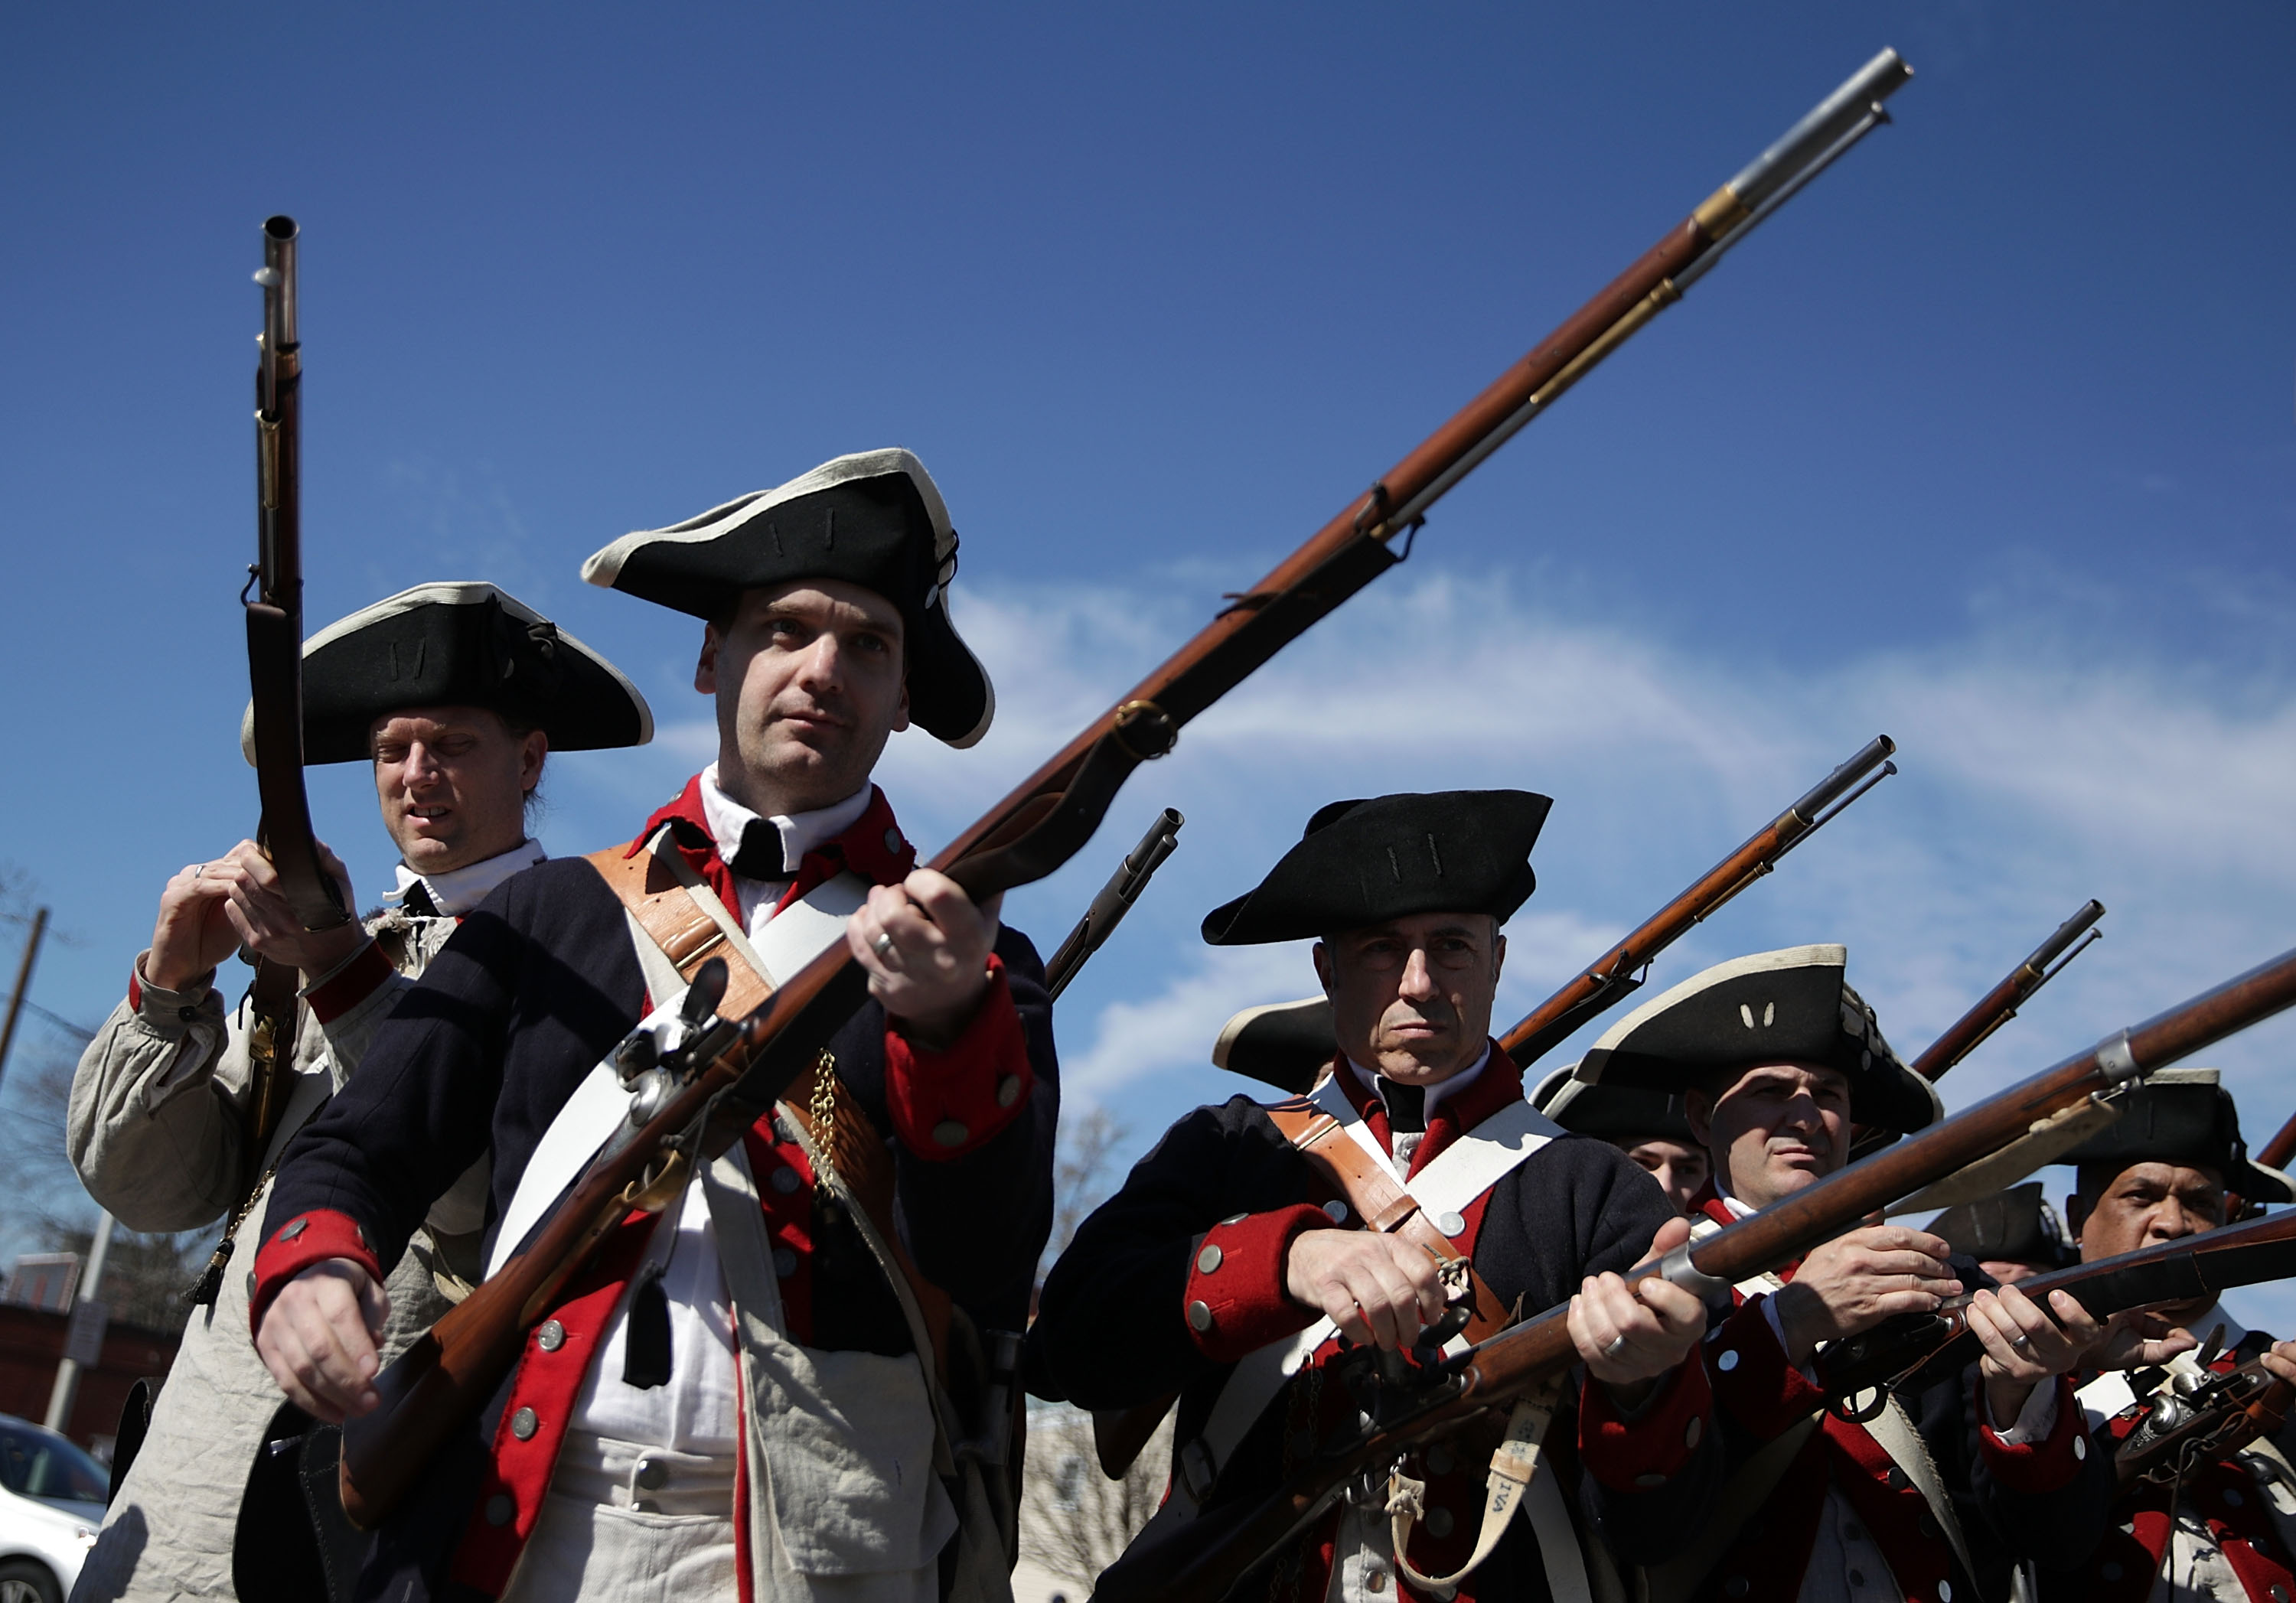 How a Bunch of Revolutionary War Reenactors Got Caught Up in Facebook's Purge of Militia Groups thumbnail